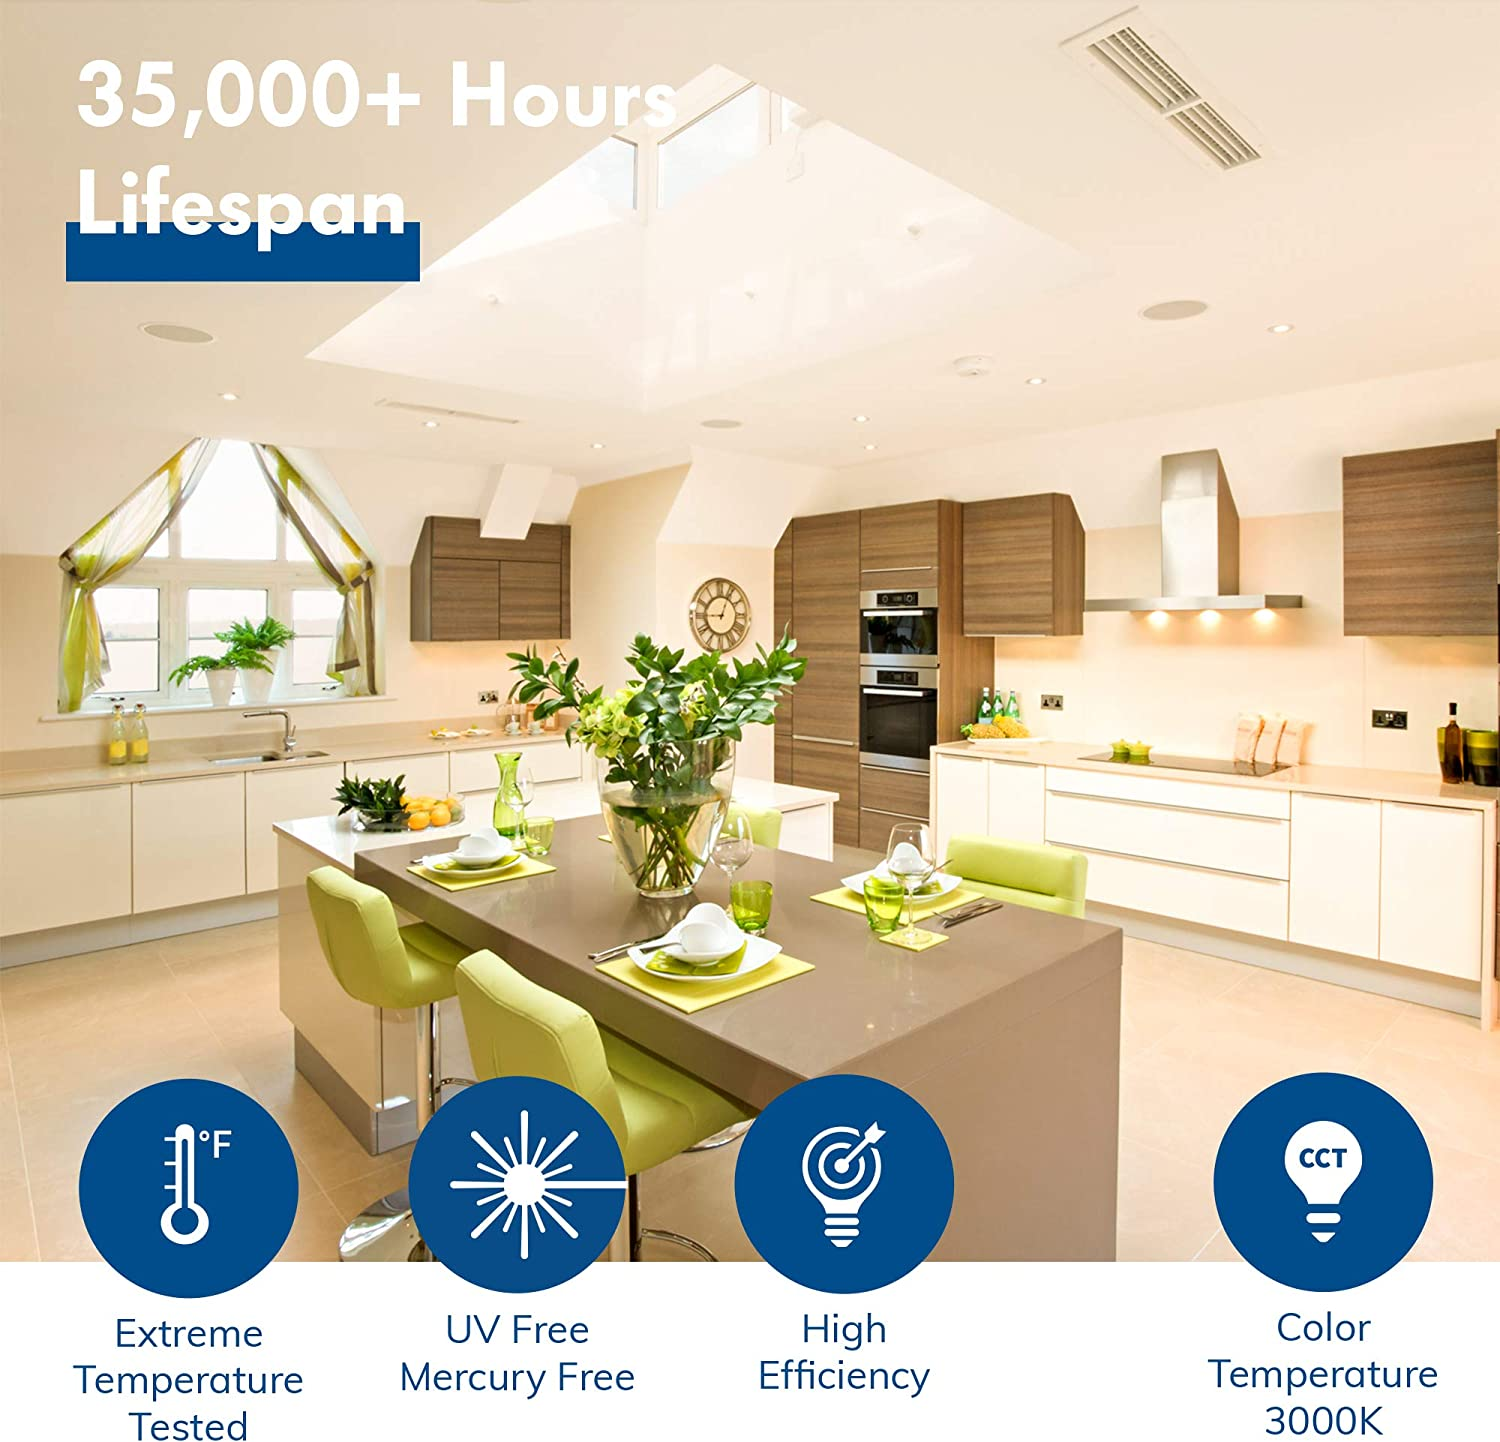 Dimmable Downlight 12 Pack Energy Star Soft White 9W=65W UL Hyperikon 4 Inch LED Recessed Lighting